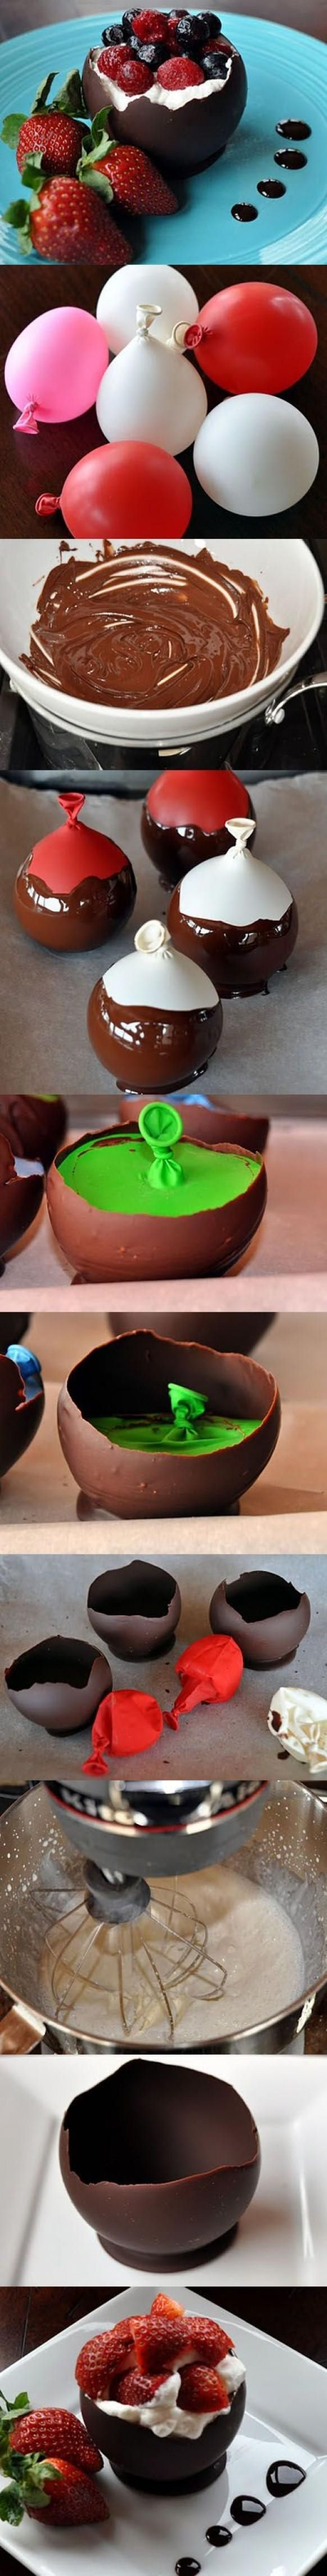 Chocolate bowl! Genius!